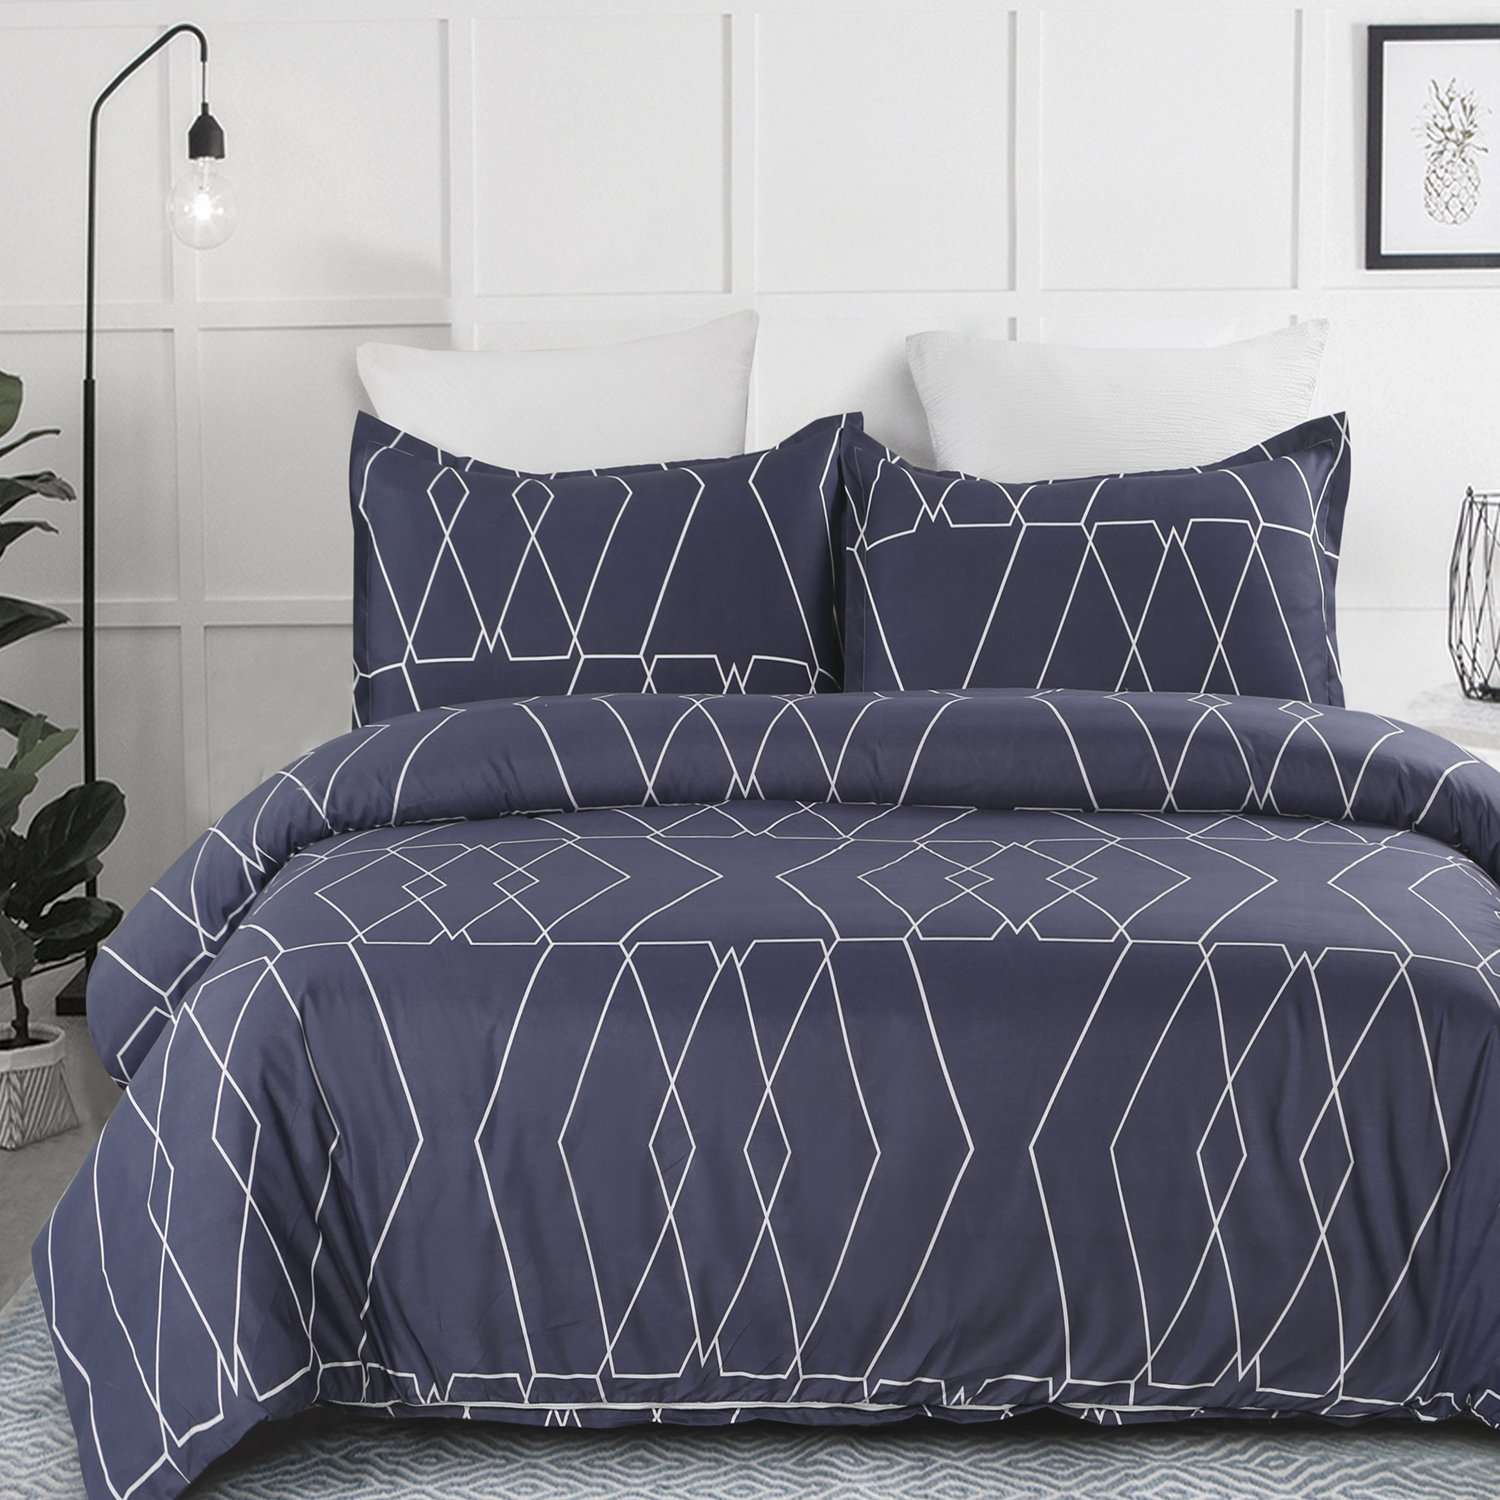 Vaulia Lightweight Microfiber Duvet Cover Set, Navy & White Color Geometric Pattern - Queen Size